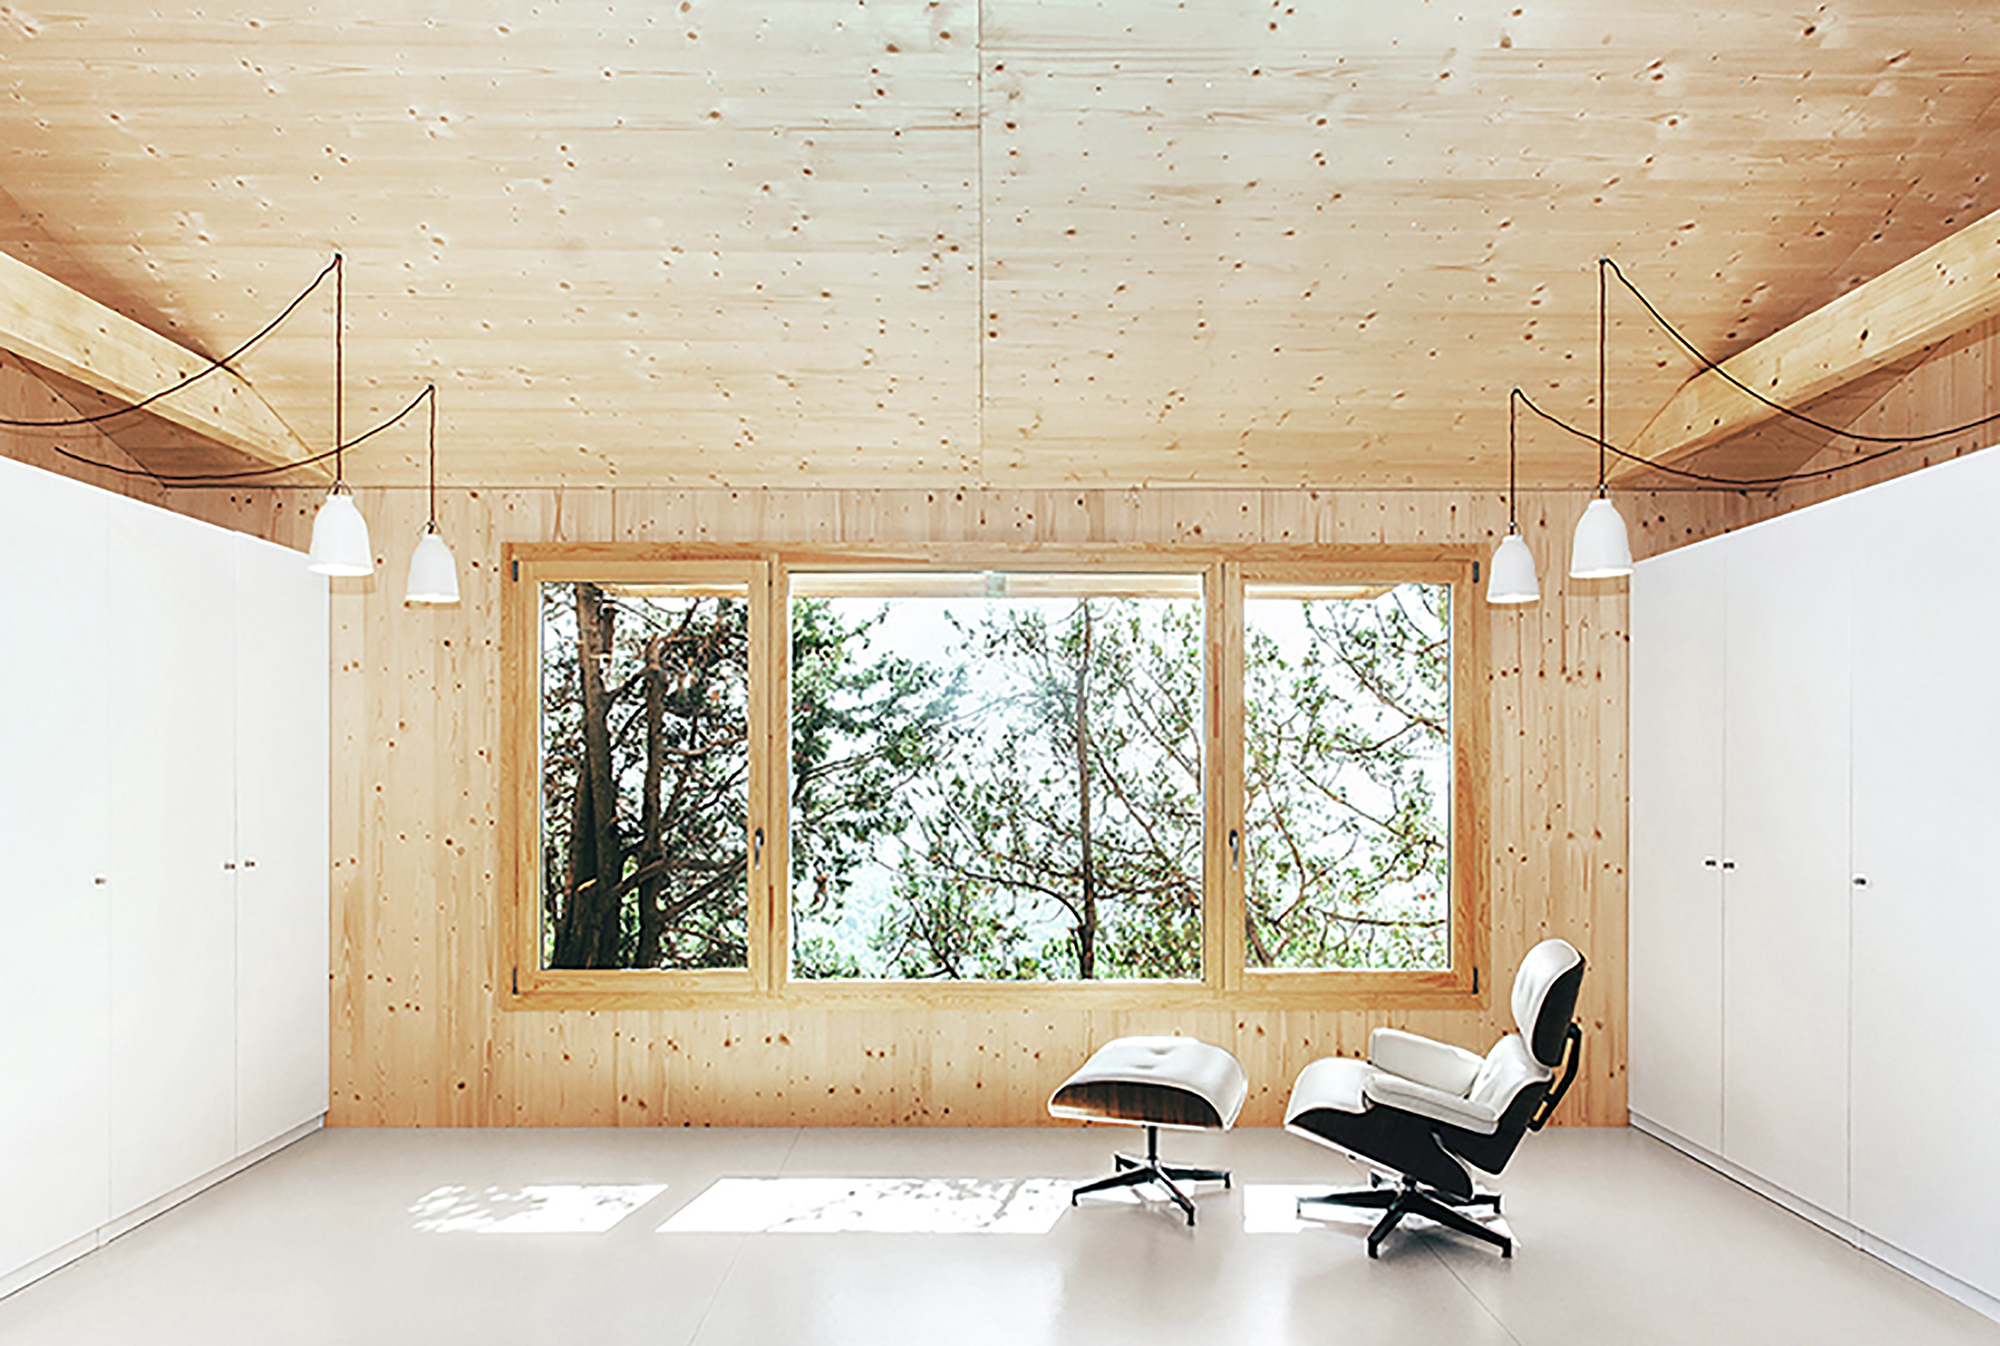 Gallery of wood studio house dom arquitectura 6 - Dom arquitectura ...